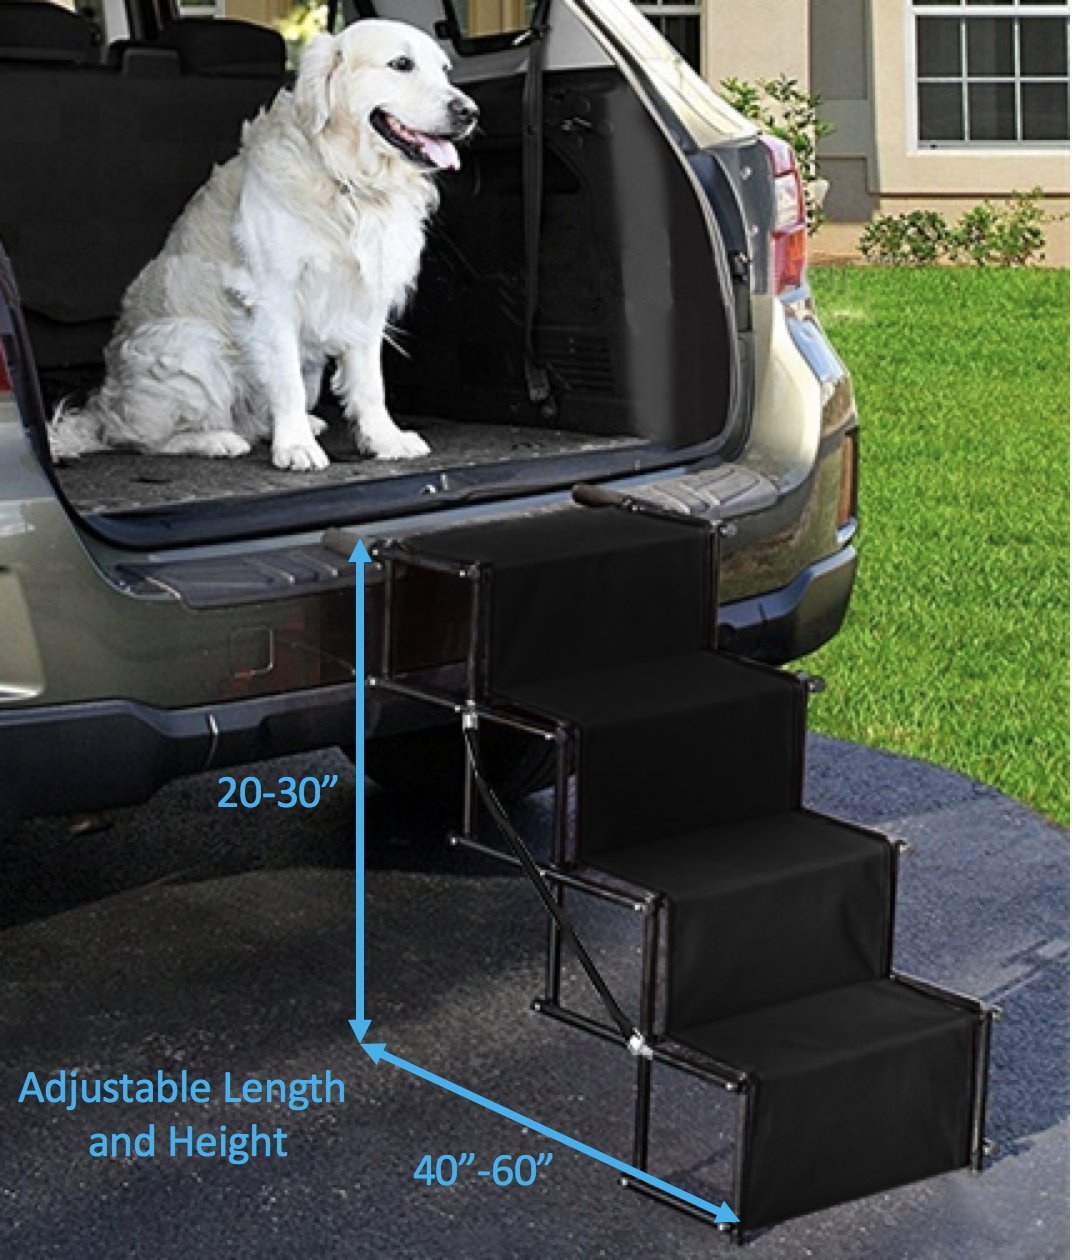 Dog Car Accordion Folding Stairs - Metal Frame Collapsible Pet Ramp with Four Steps - Lightweight, Portable, Adjustable Ramp Ladder for Car, SUV, Truck, Couch, Bed (4 Step, Black) by Golden Coast Unlimited